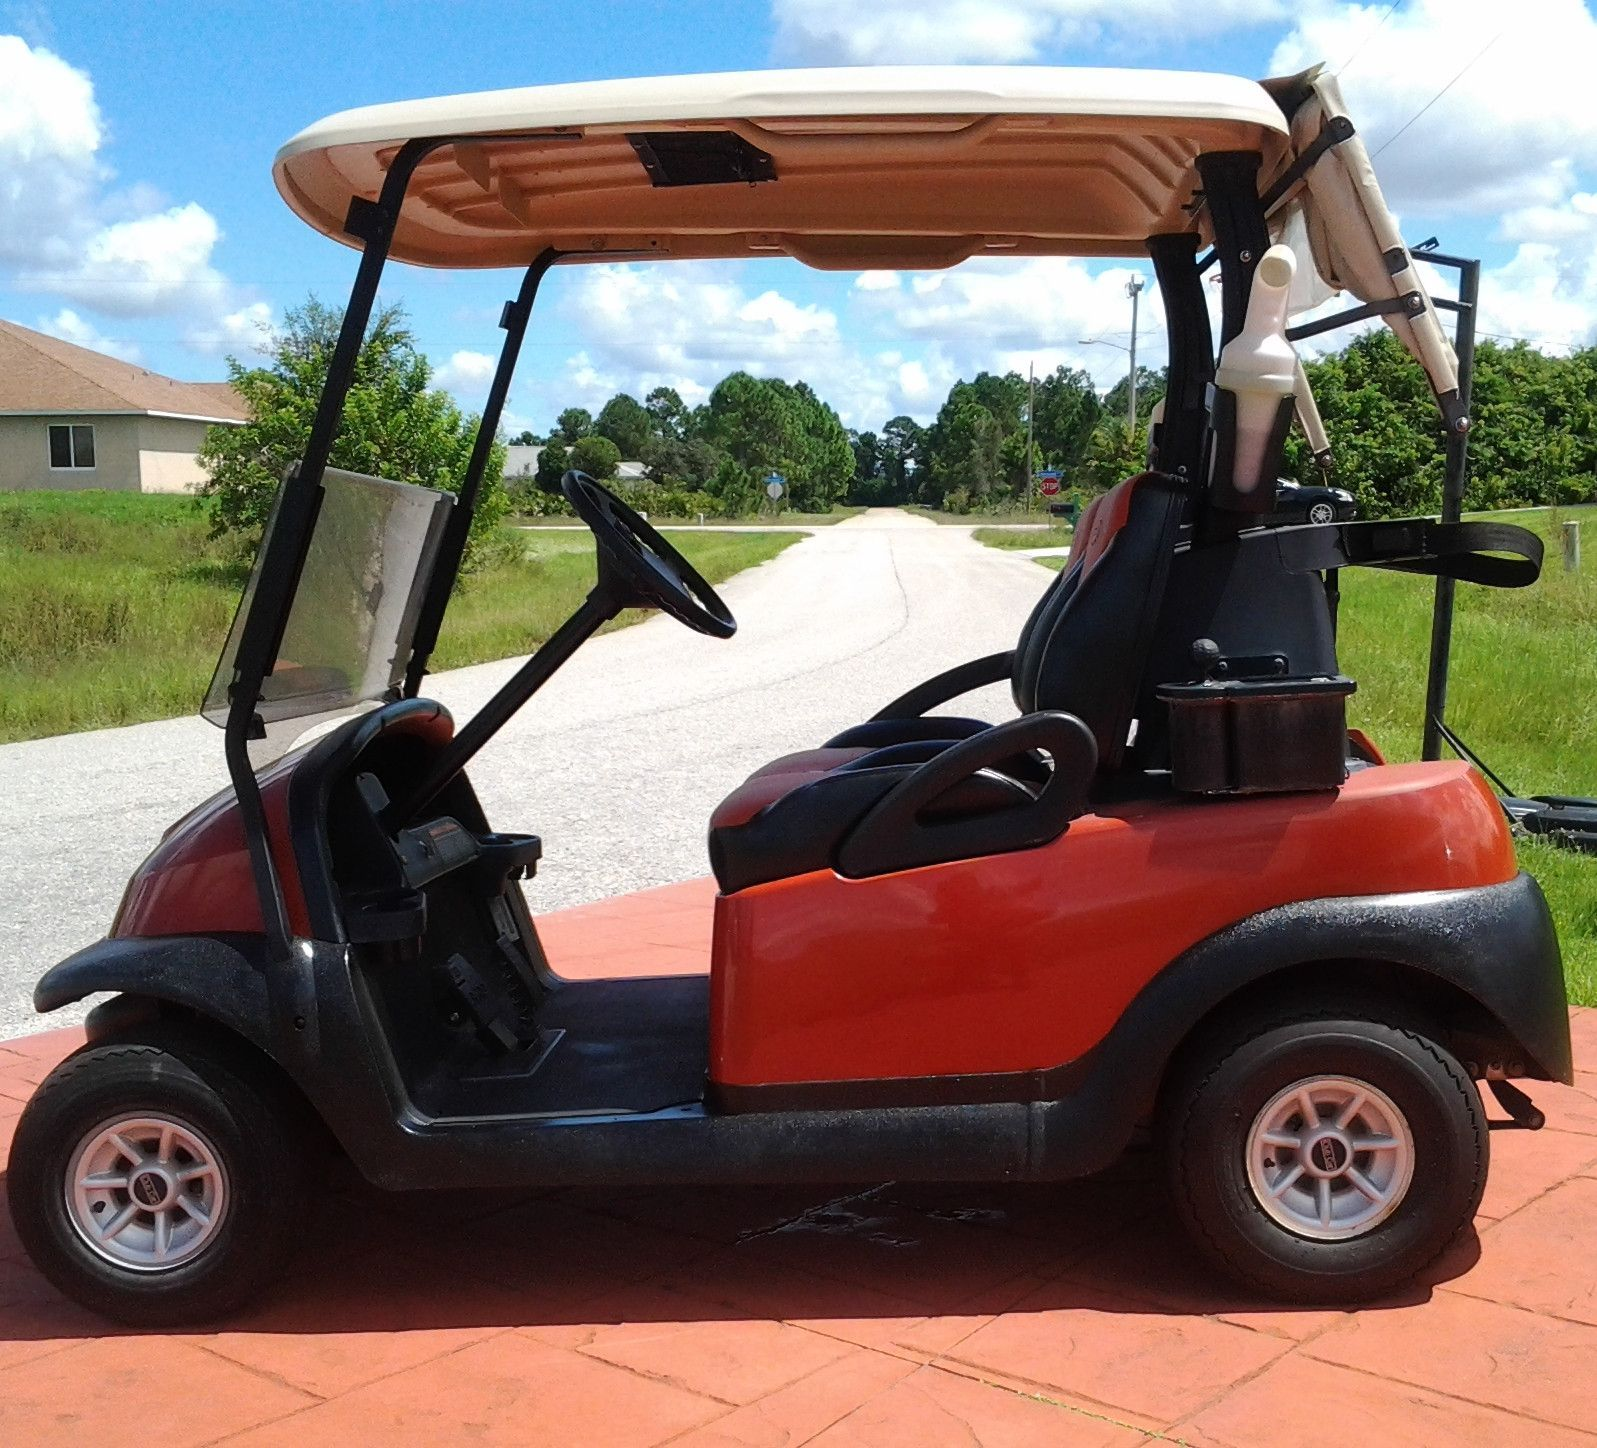 2010 Cayenne Club Car Precedent Golf Cart w/ New Batteries